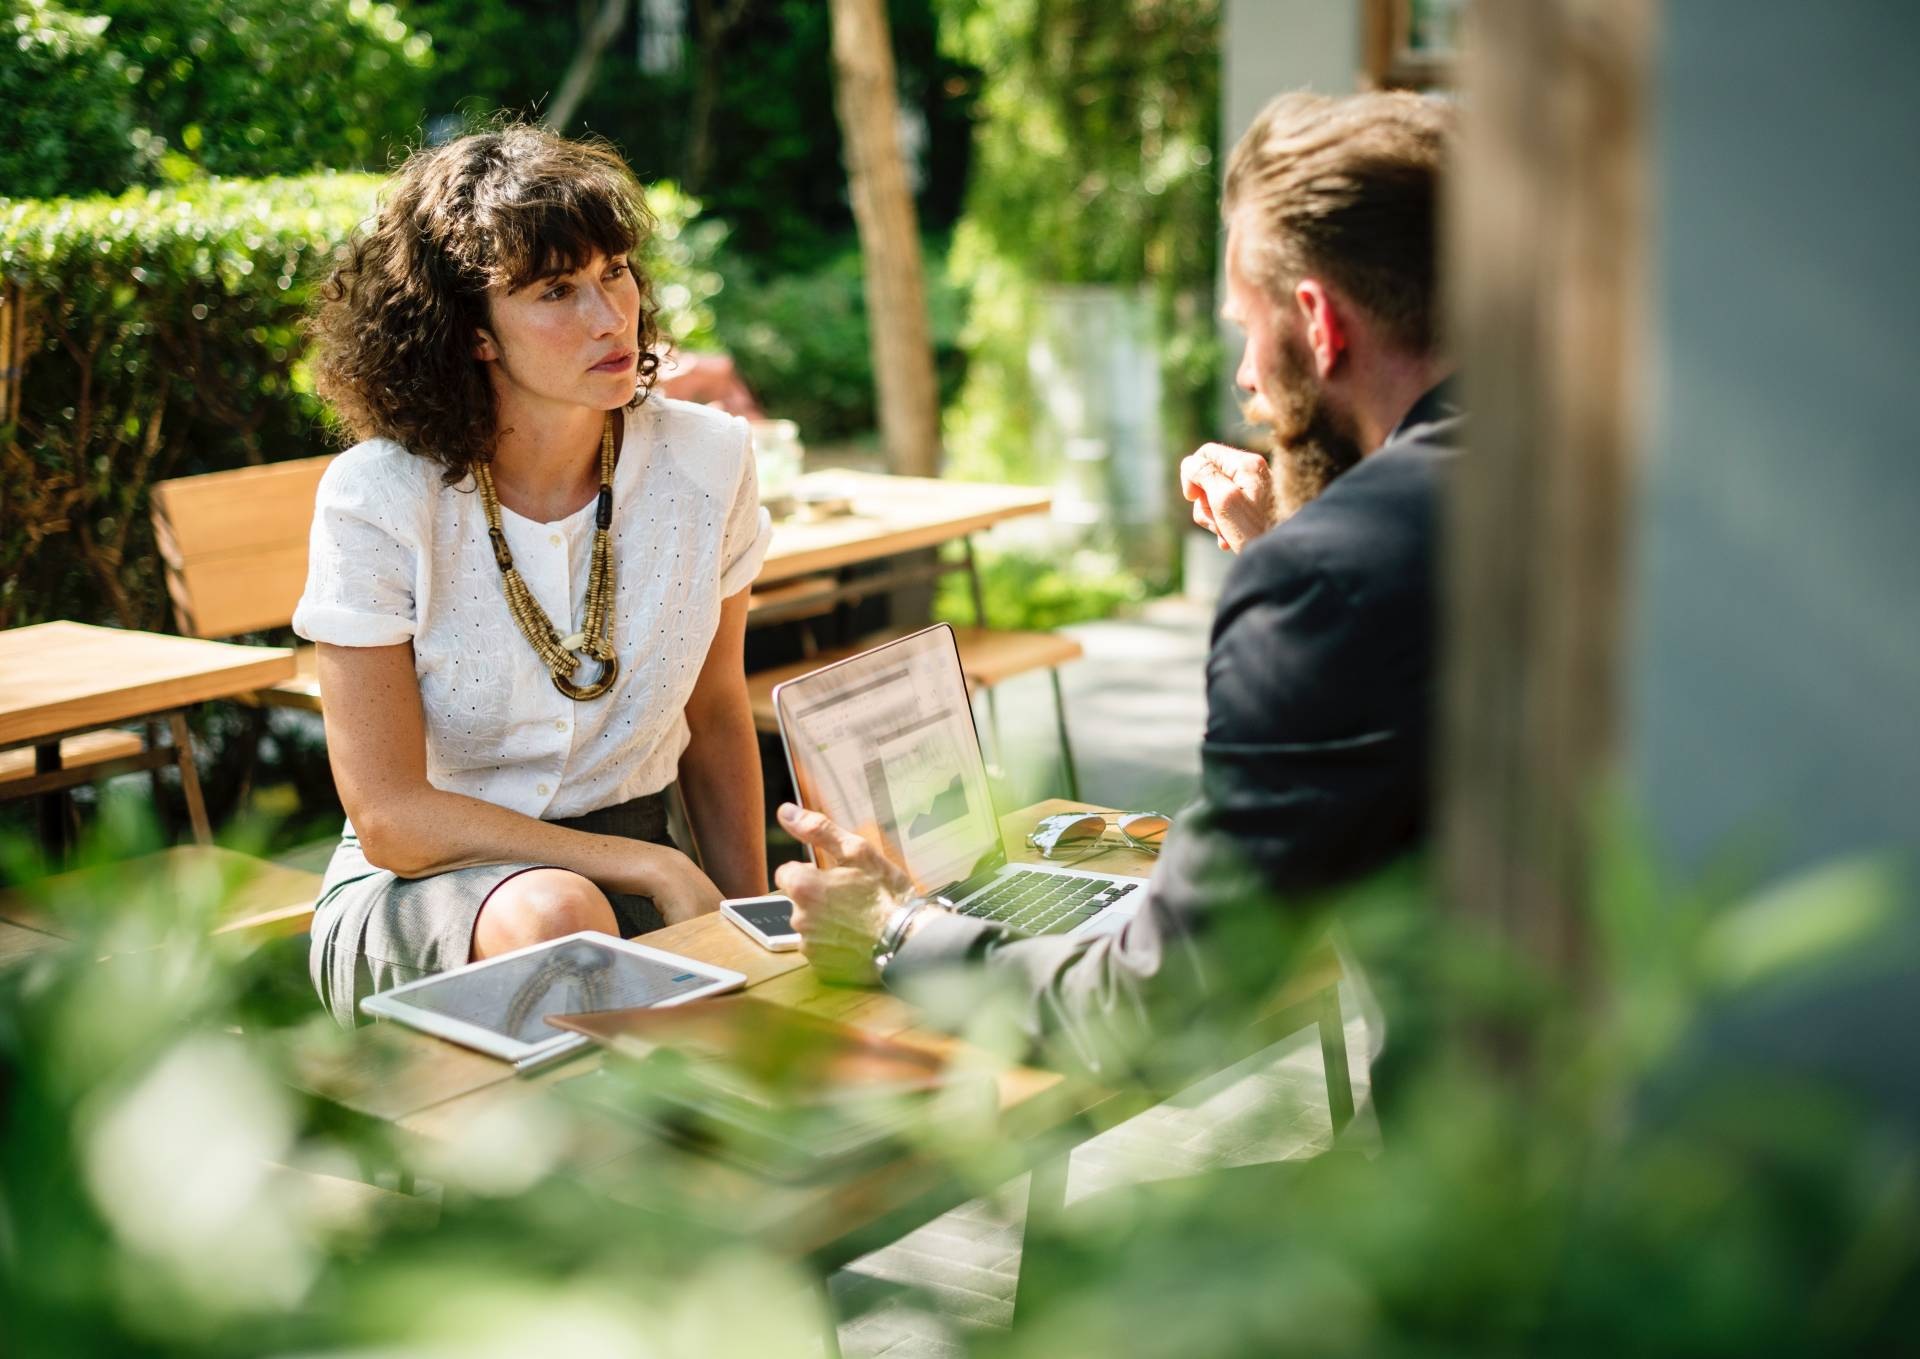 The Foundation of Charismatic Interviewing